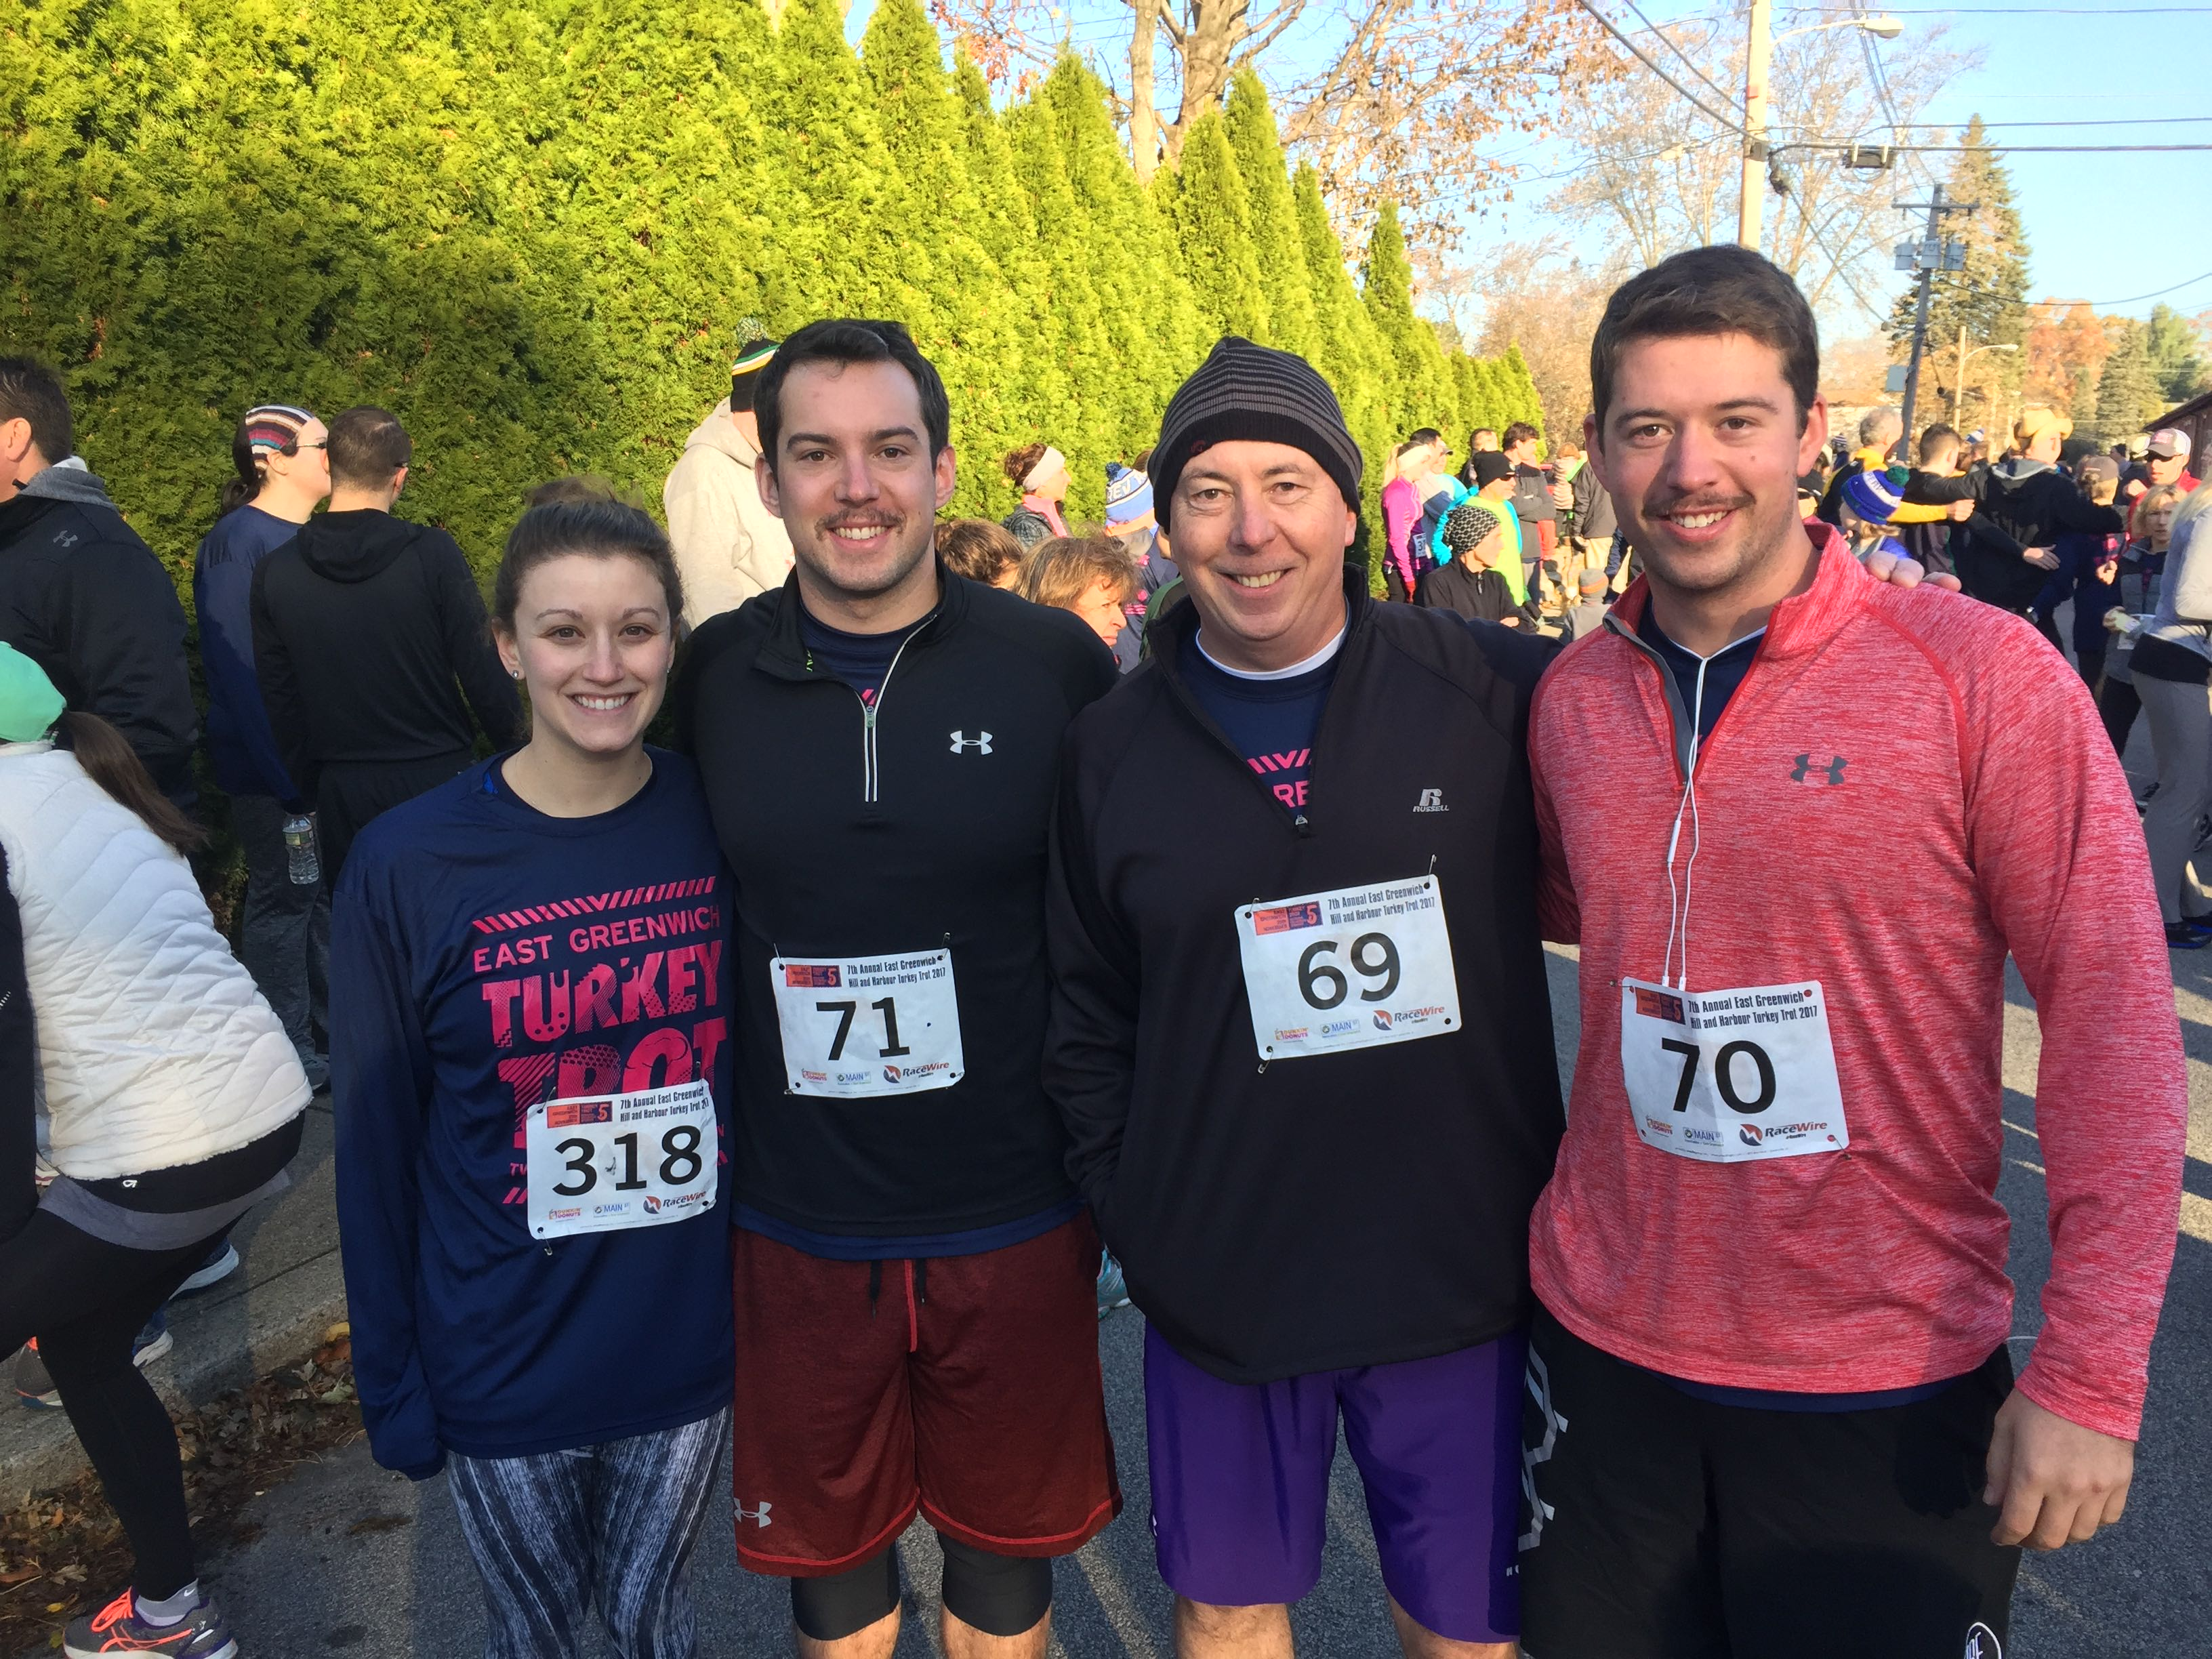 Jaclyn Vignati, Ted Cullinane, Paul Cullinane and Scott Cullinane before the race.